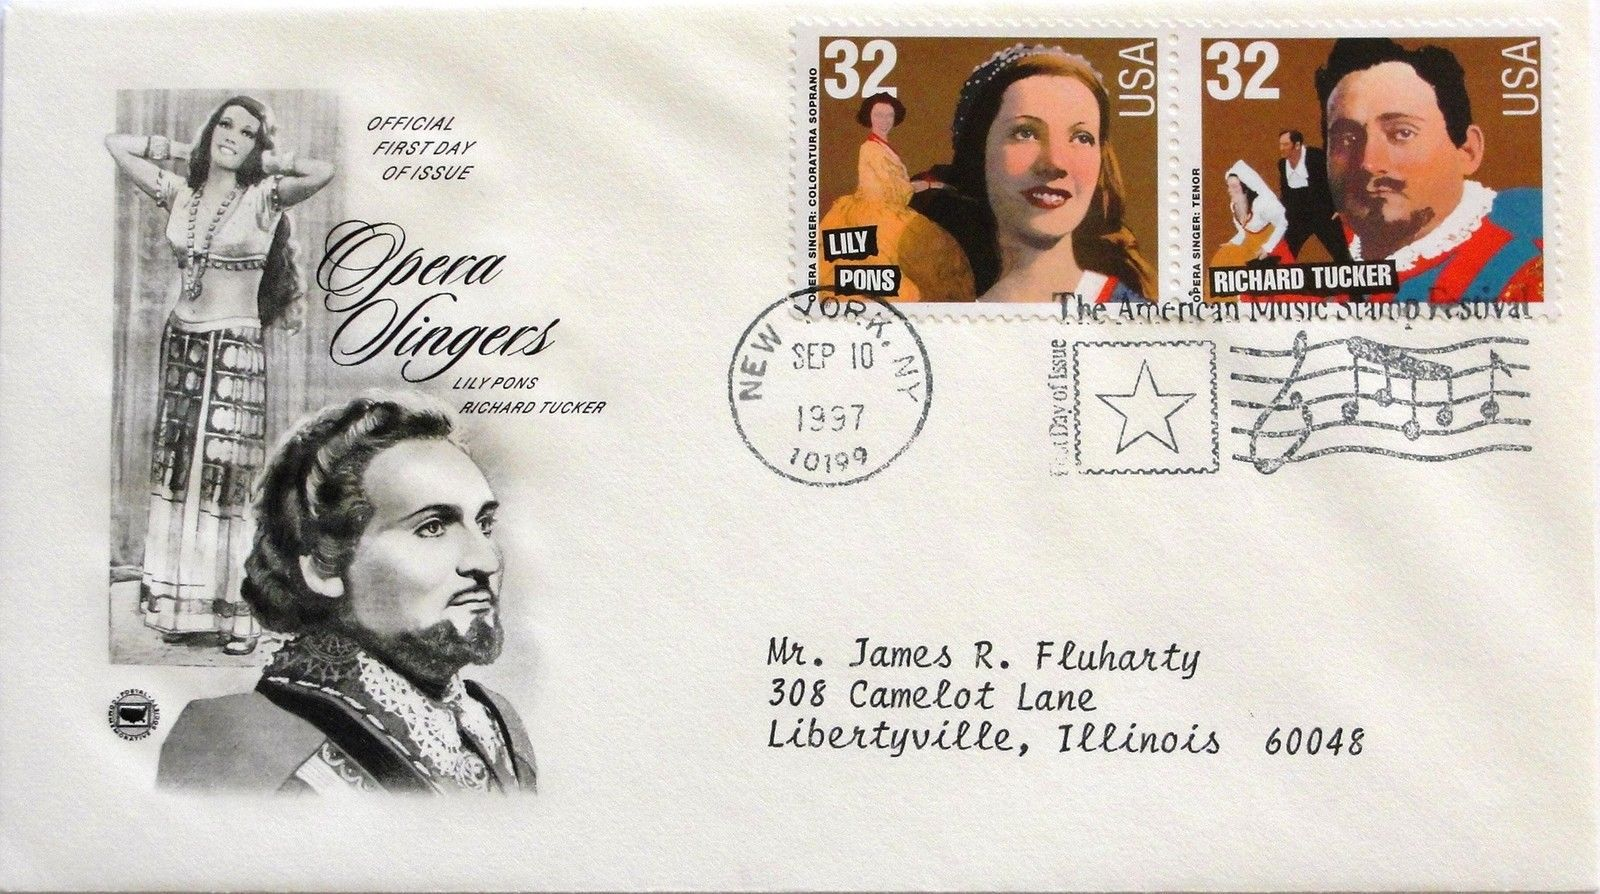 Sept. 10, 1997 First Day of Issue, PC Society Covers, Opera-Pons/Tucker #39